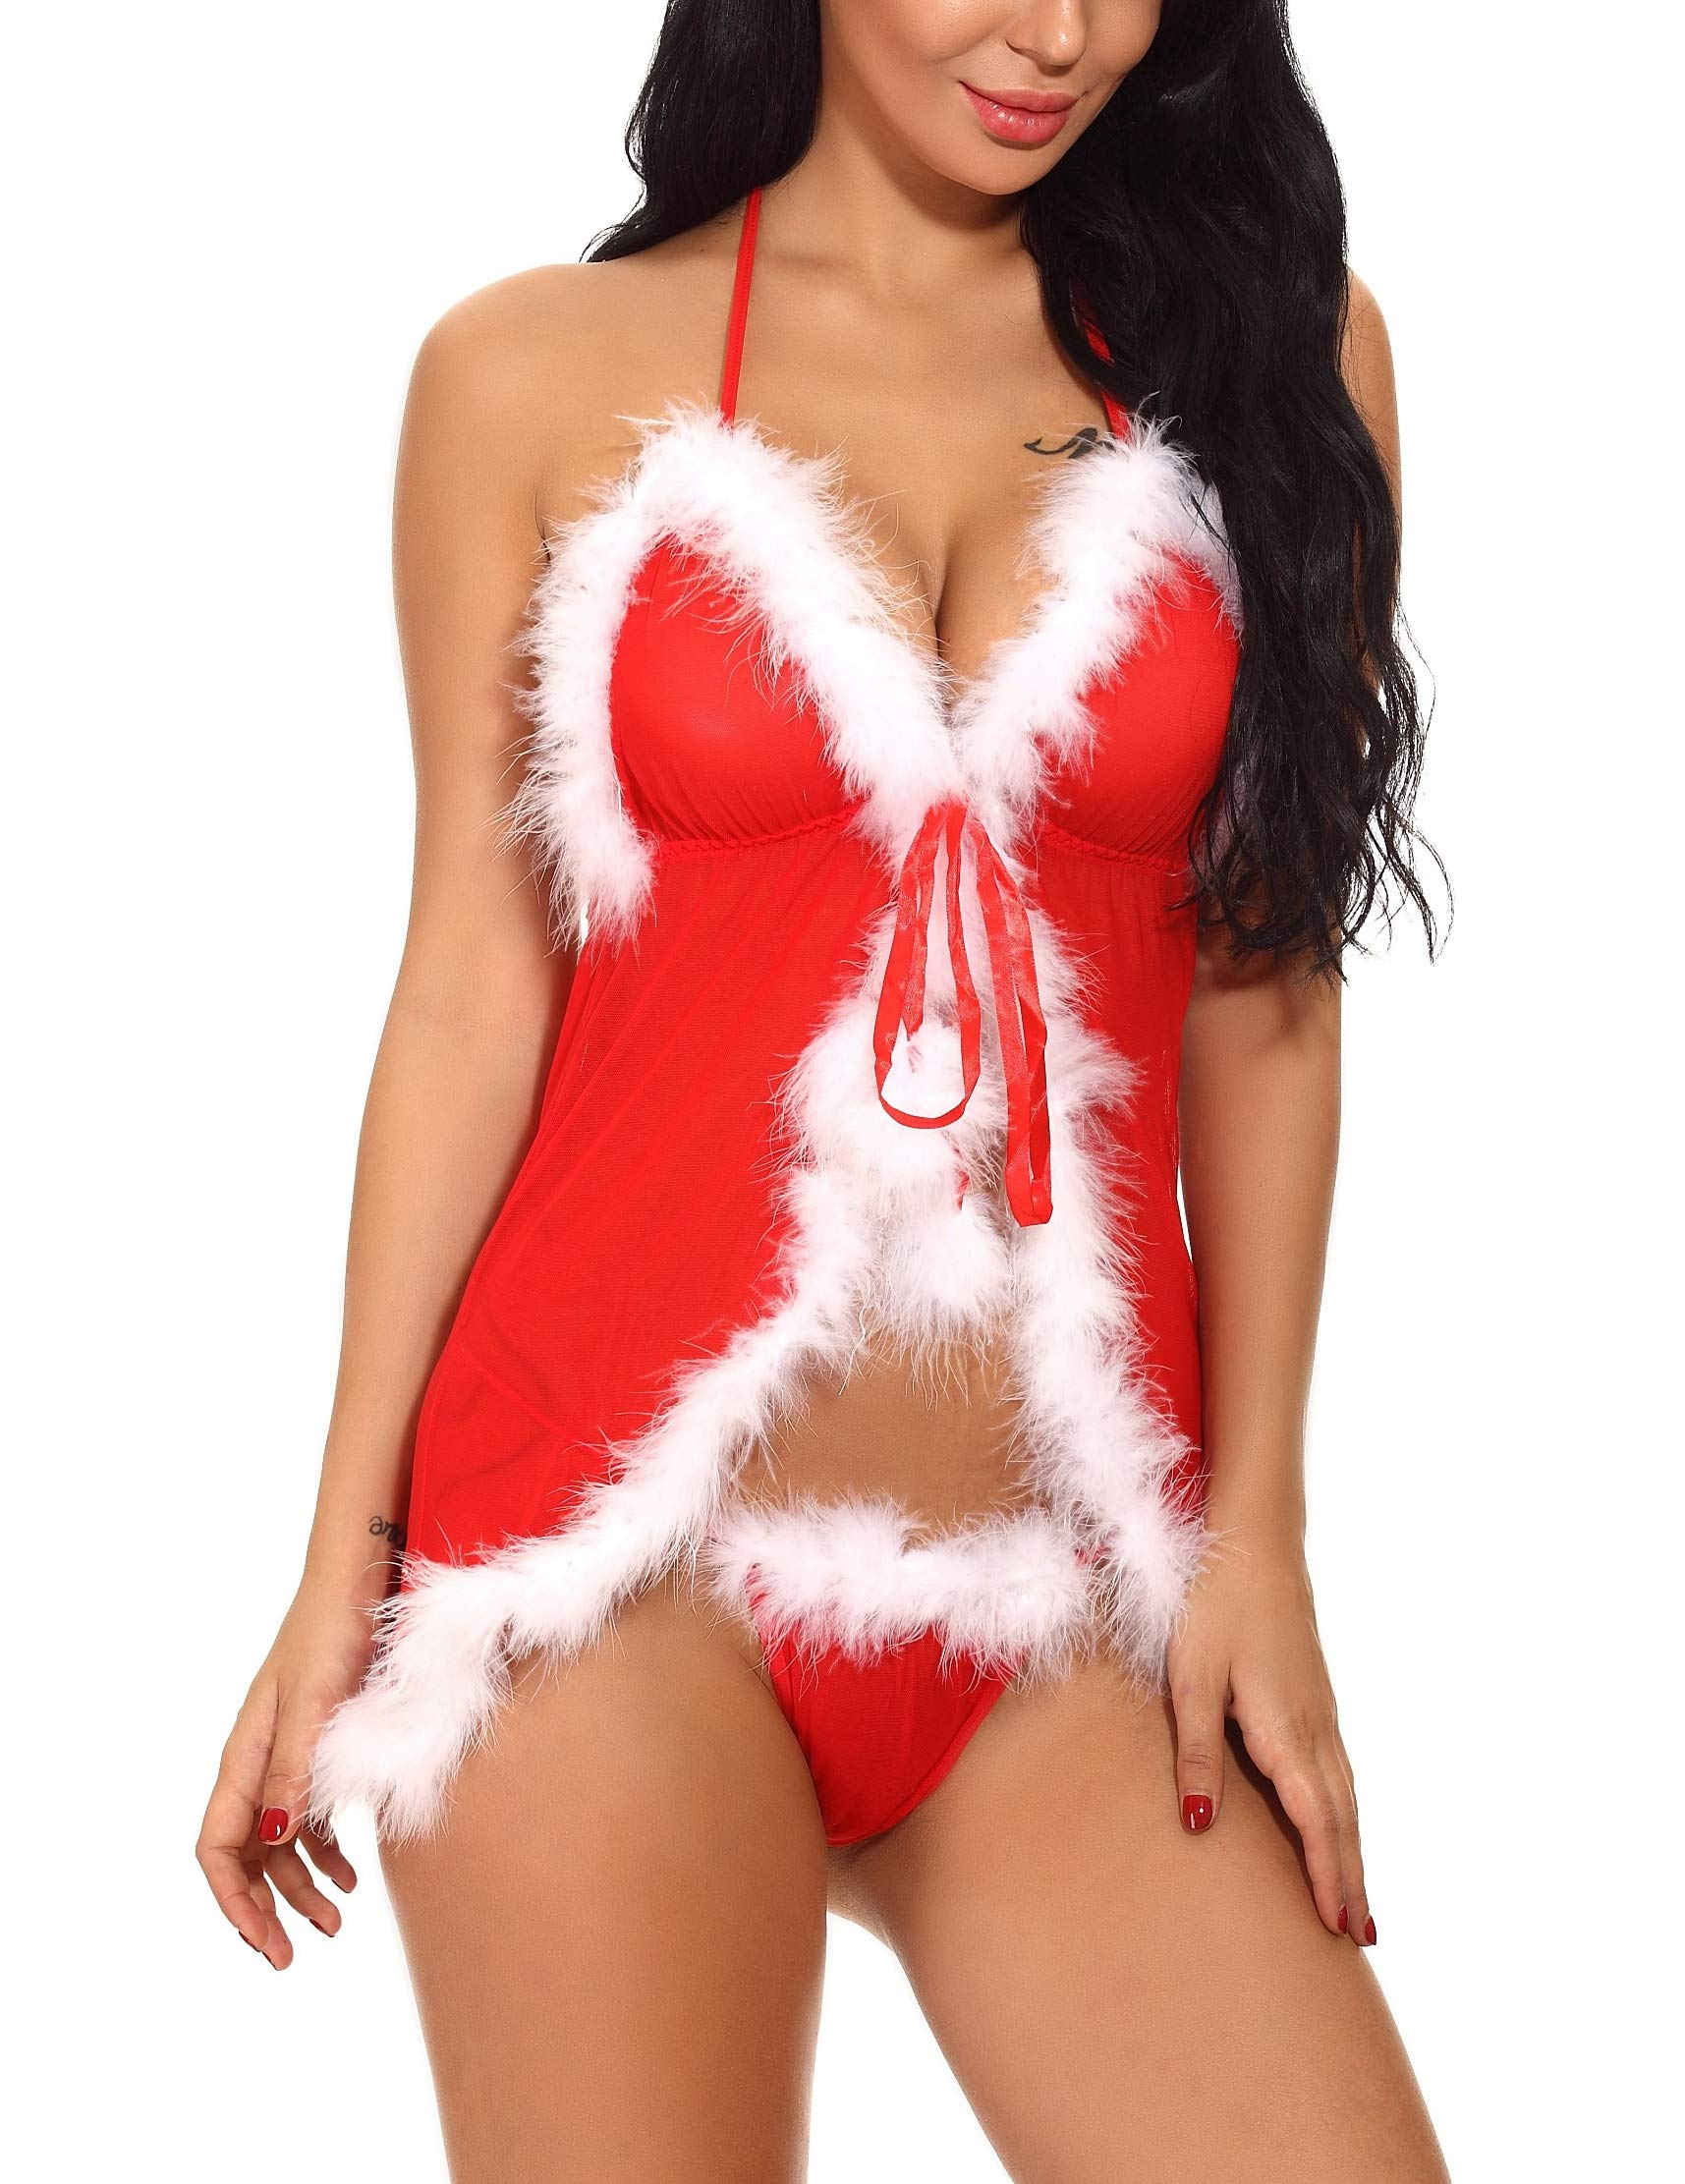 Bivan Women Christmas Lingerie Set Lace Babydoll Chemise Naughty Santa Outfits